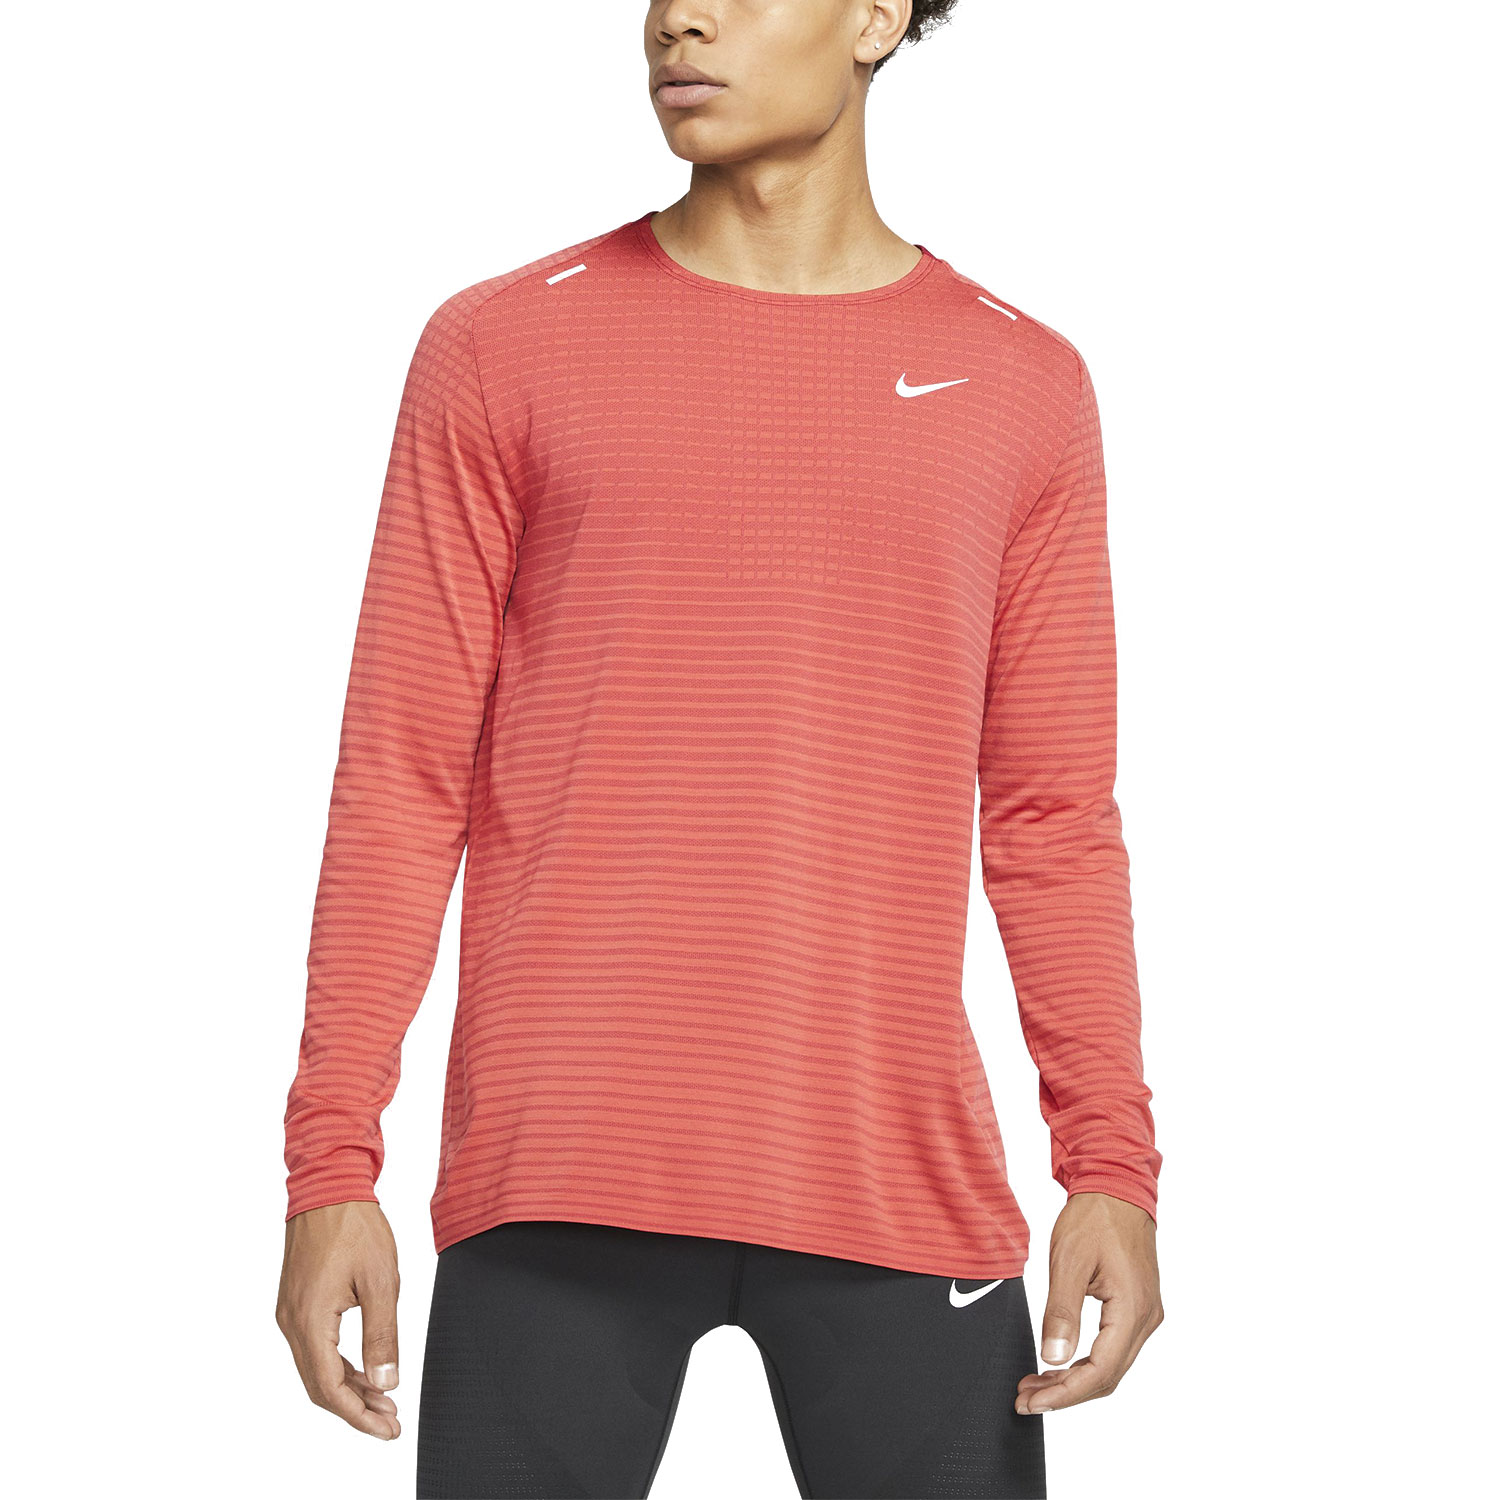 Nike TechKnit Ultra Shirt - Track Red/Noble Red/Reflective Silver